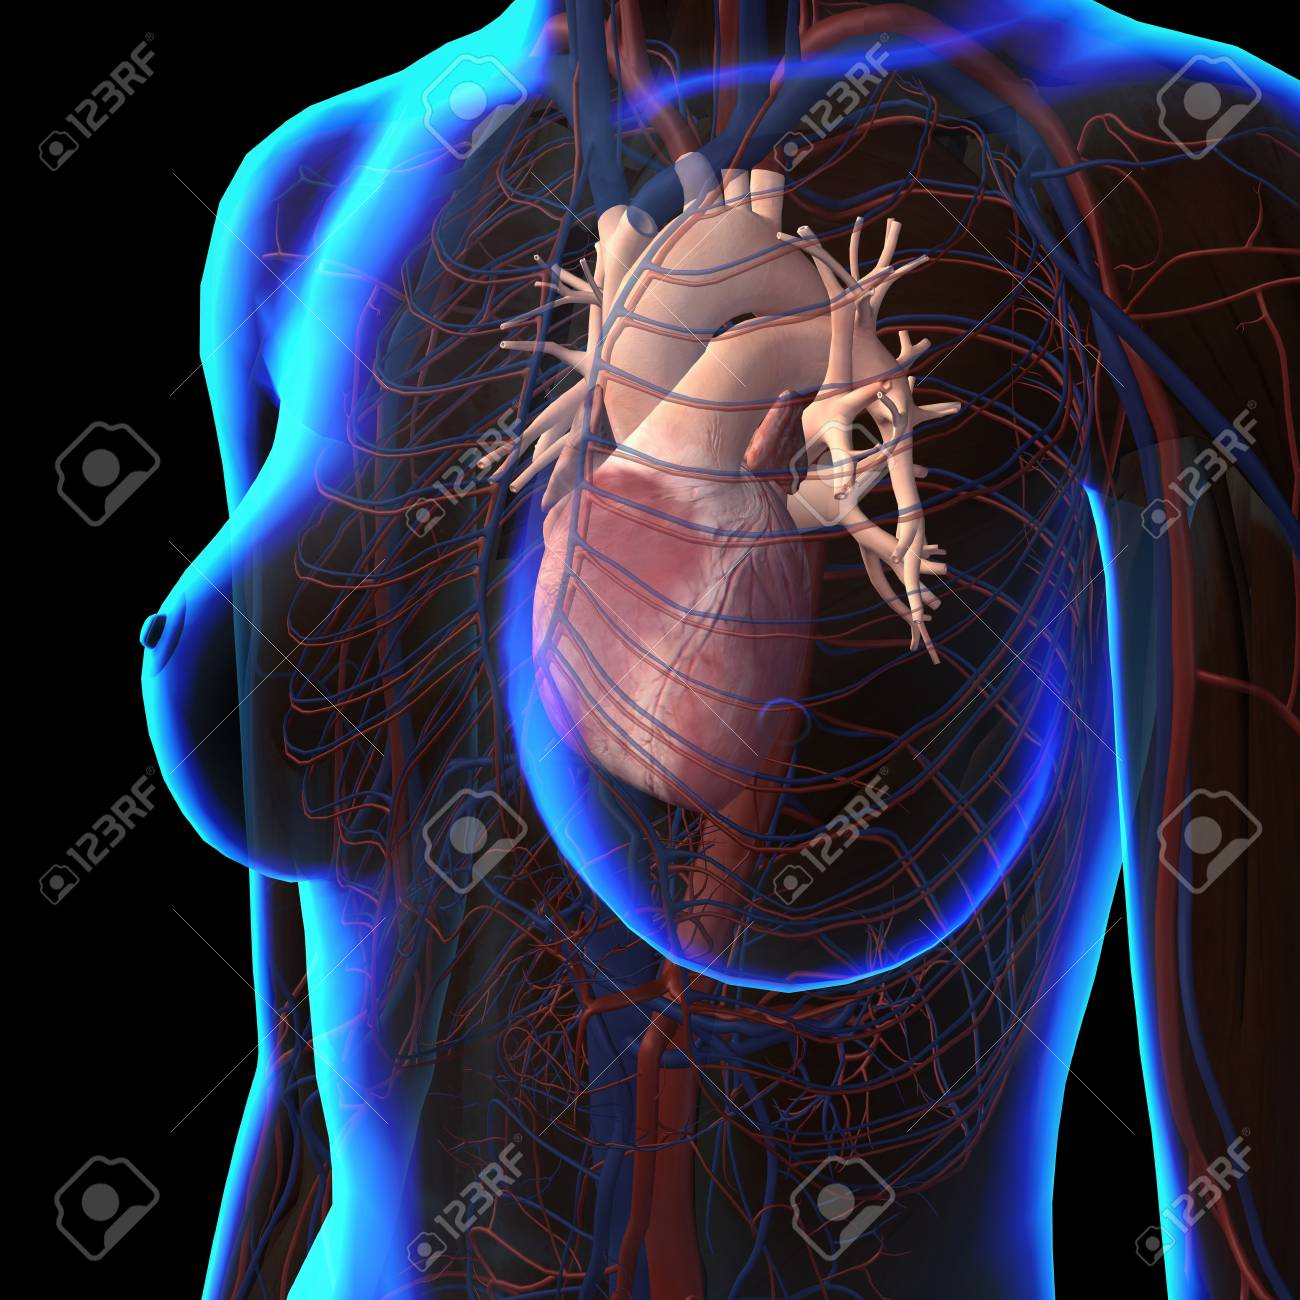 hight resolution of stock photo x ray view of female chest with heart and circulatory system